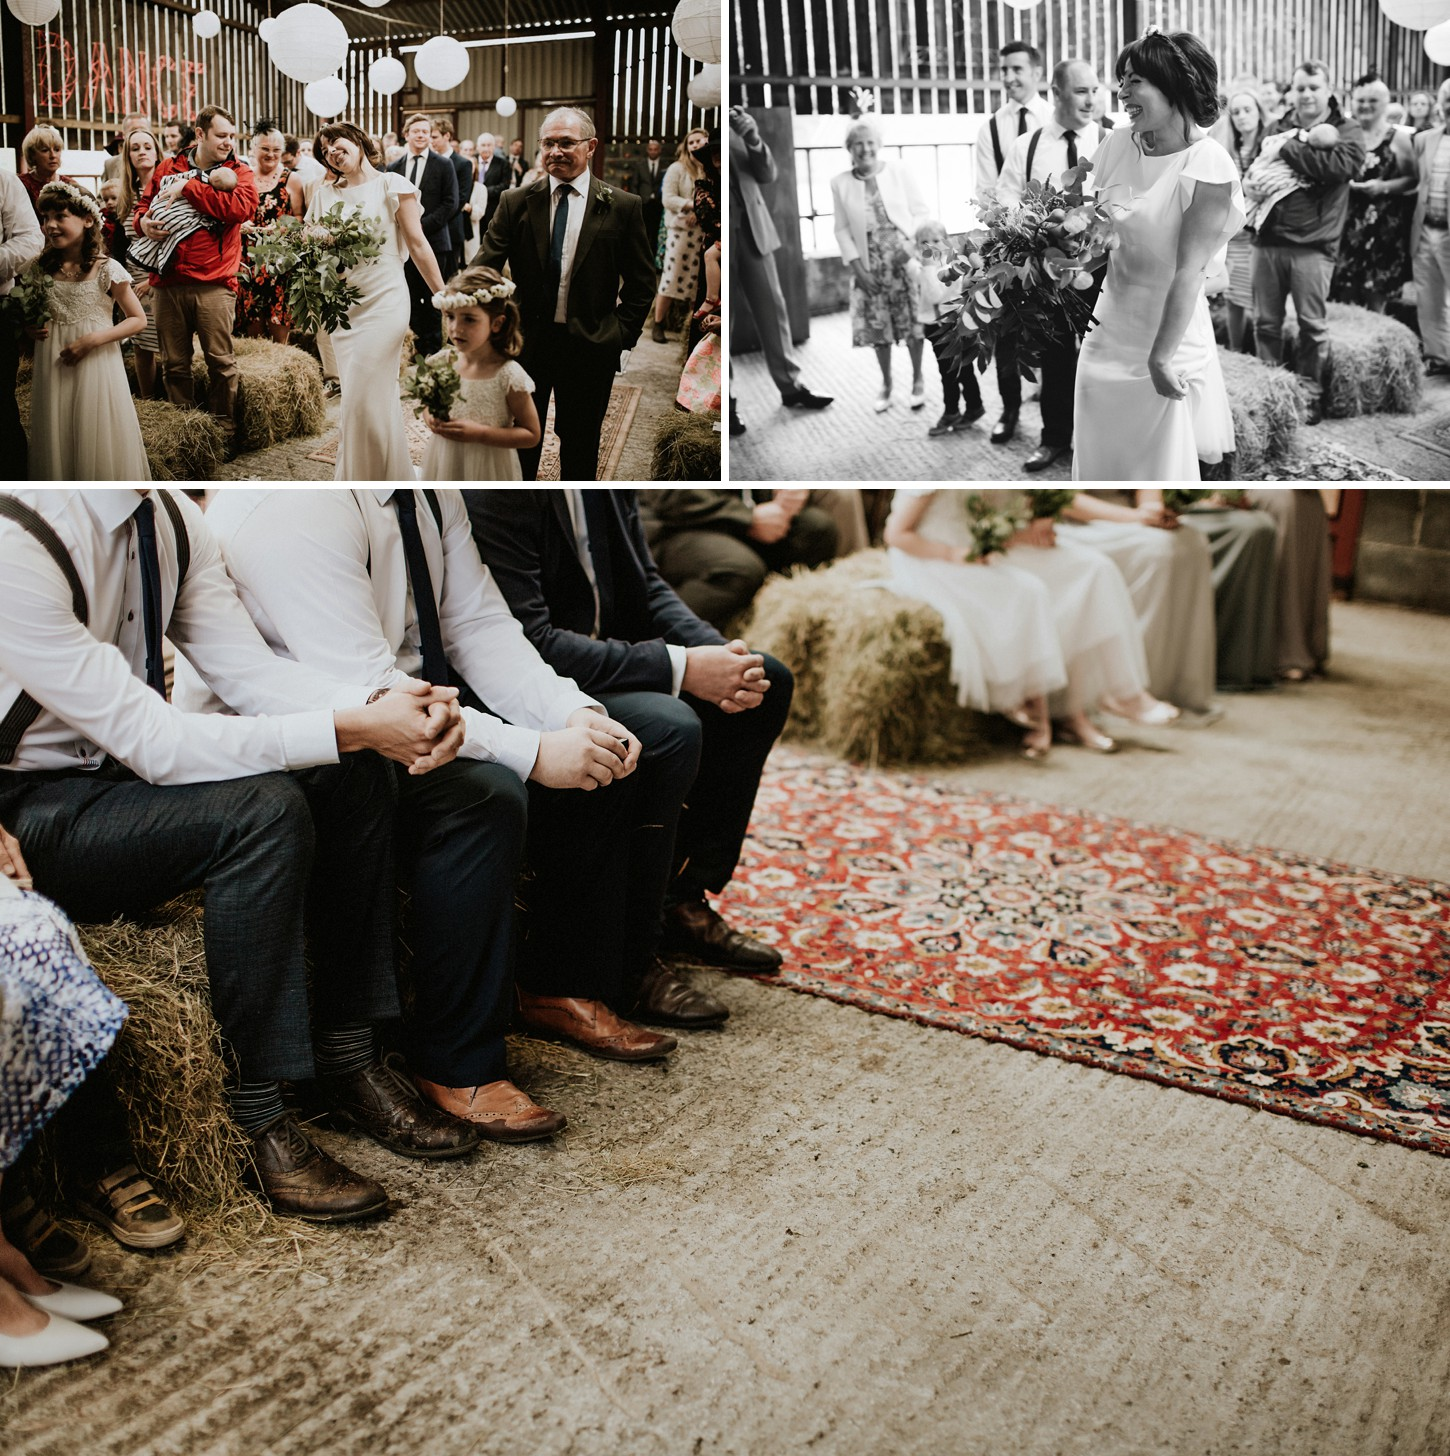 Dolau-Sheep-Farm-Wedding-Wales-United-Kingdom-020